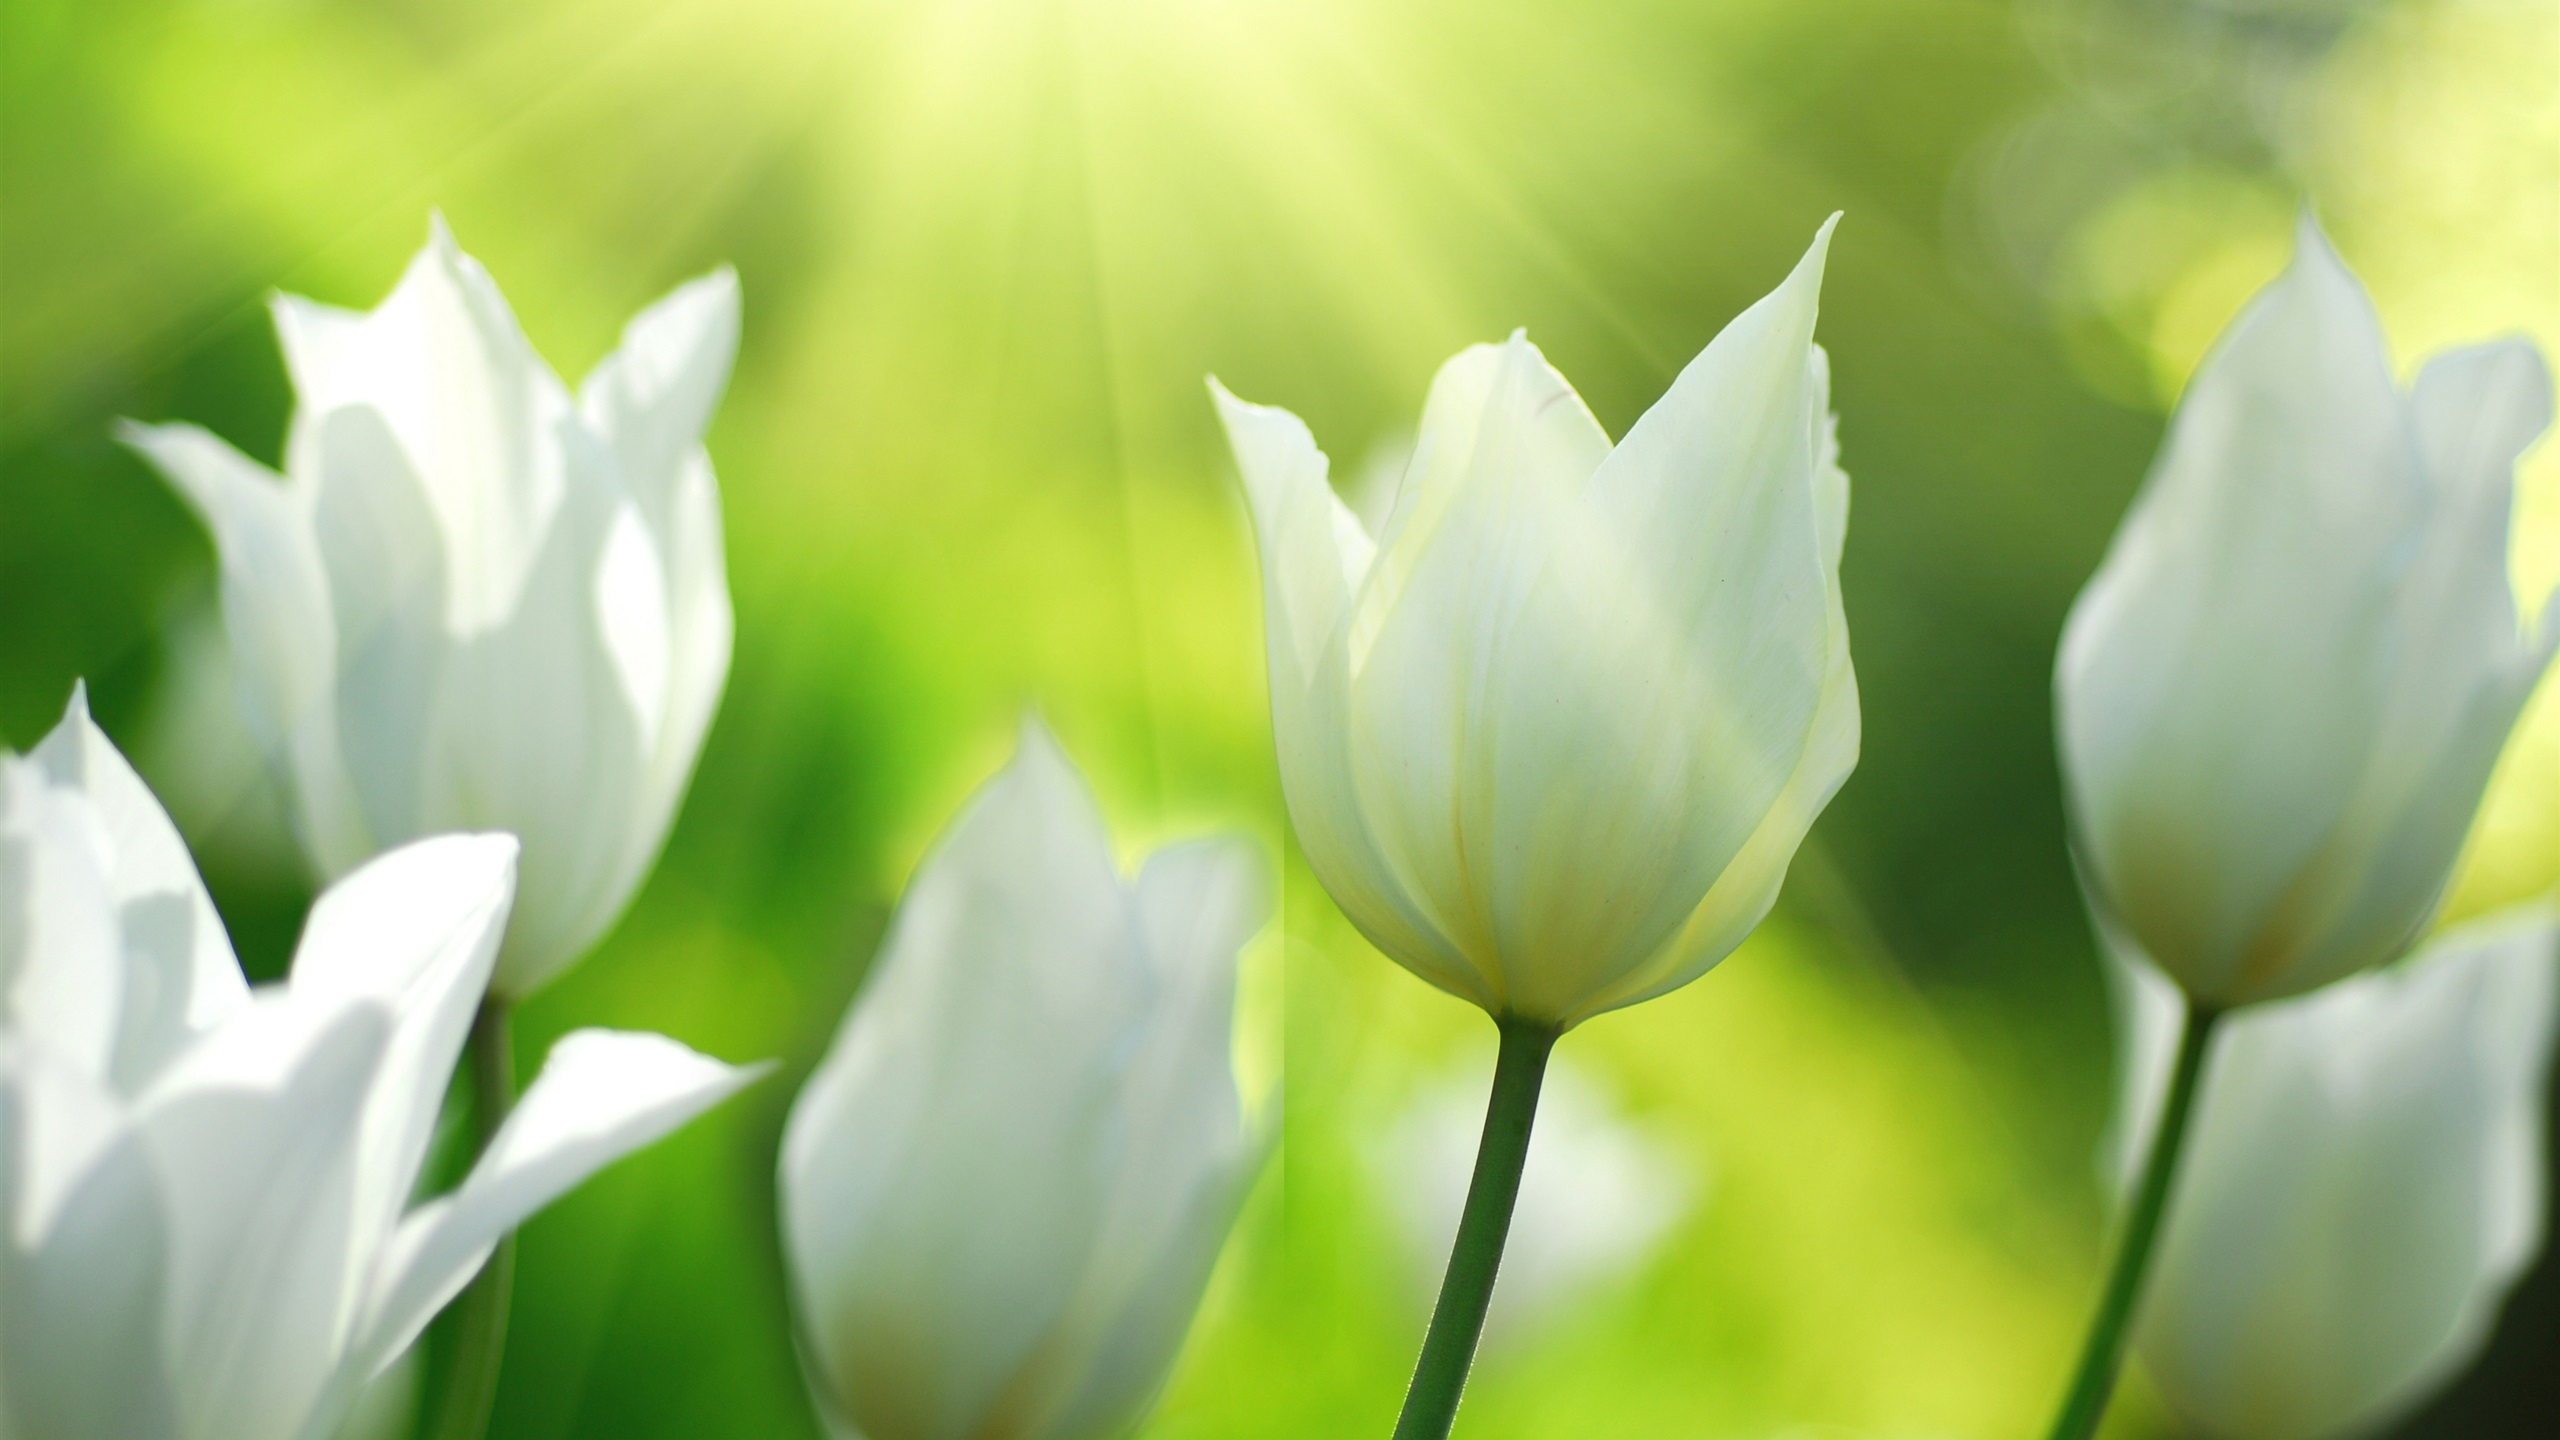 Wallpaper White Tulips Flowers In Spring 3840x2160 Uhd 4k Picture Image